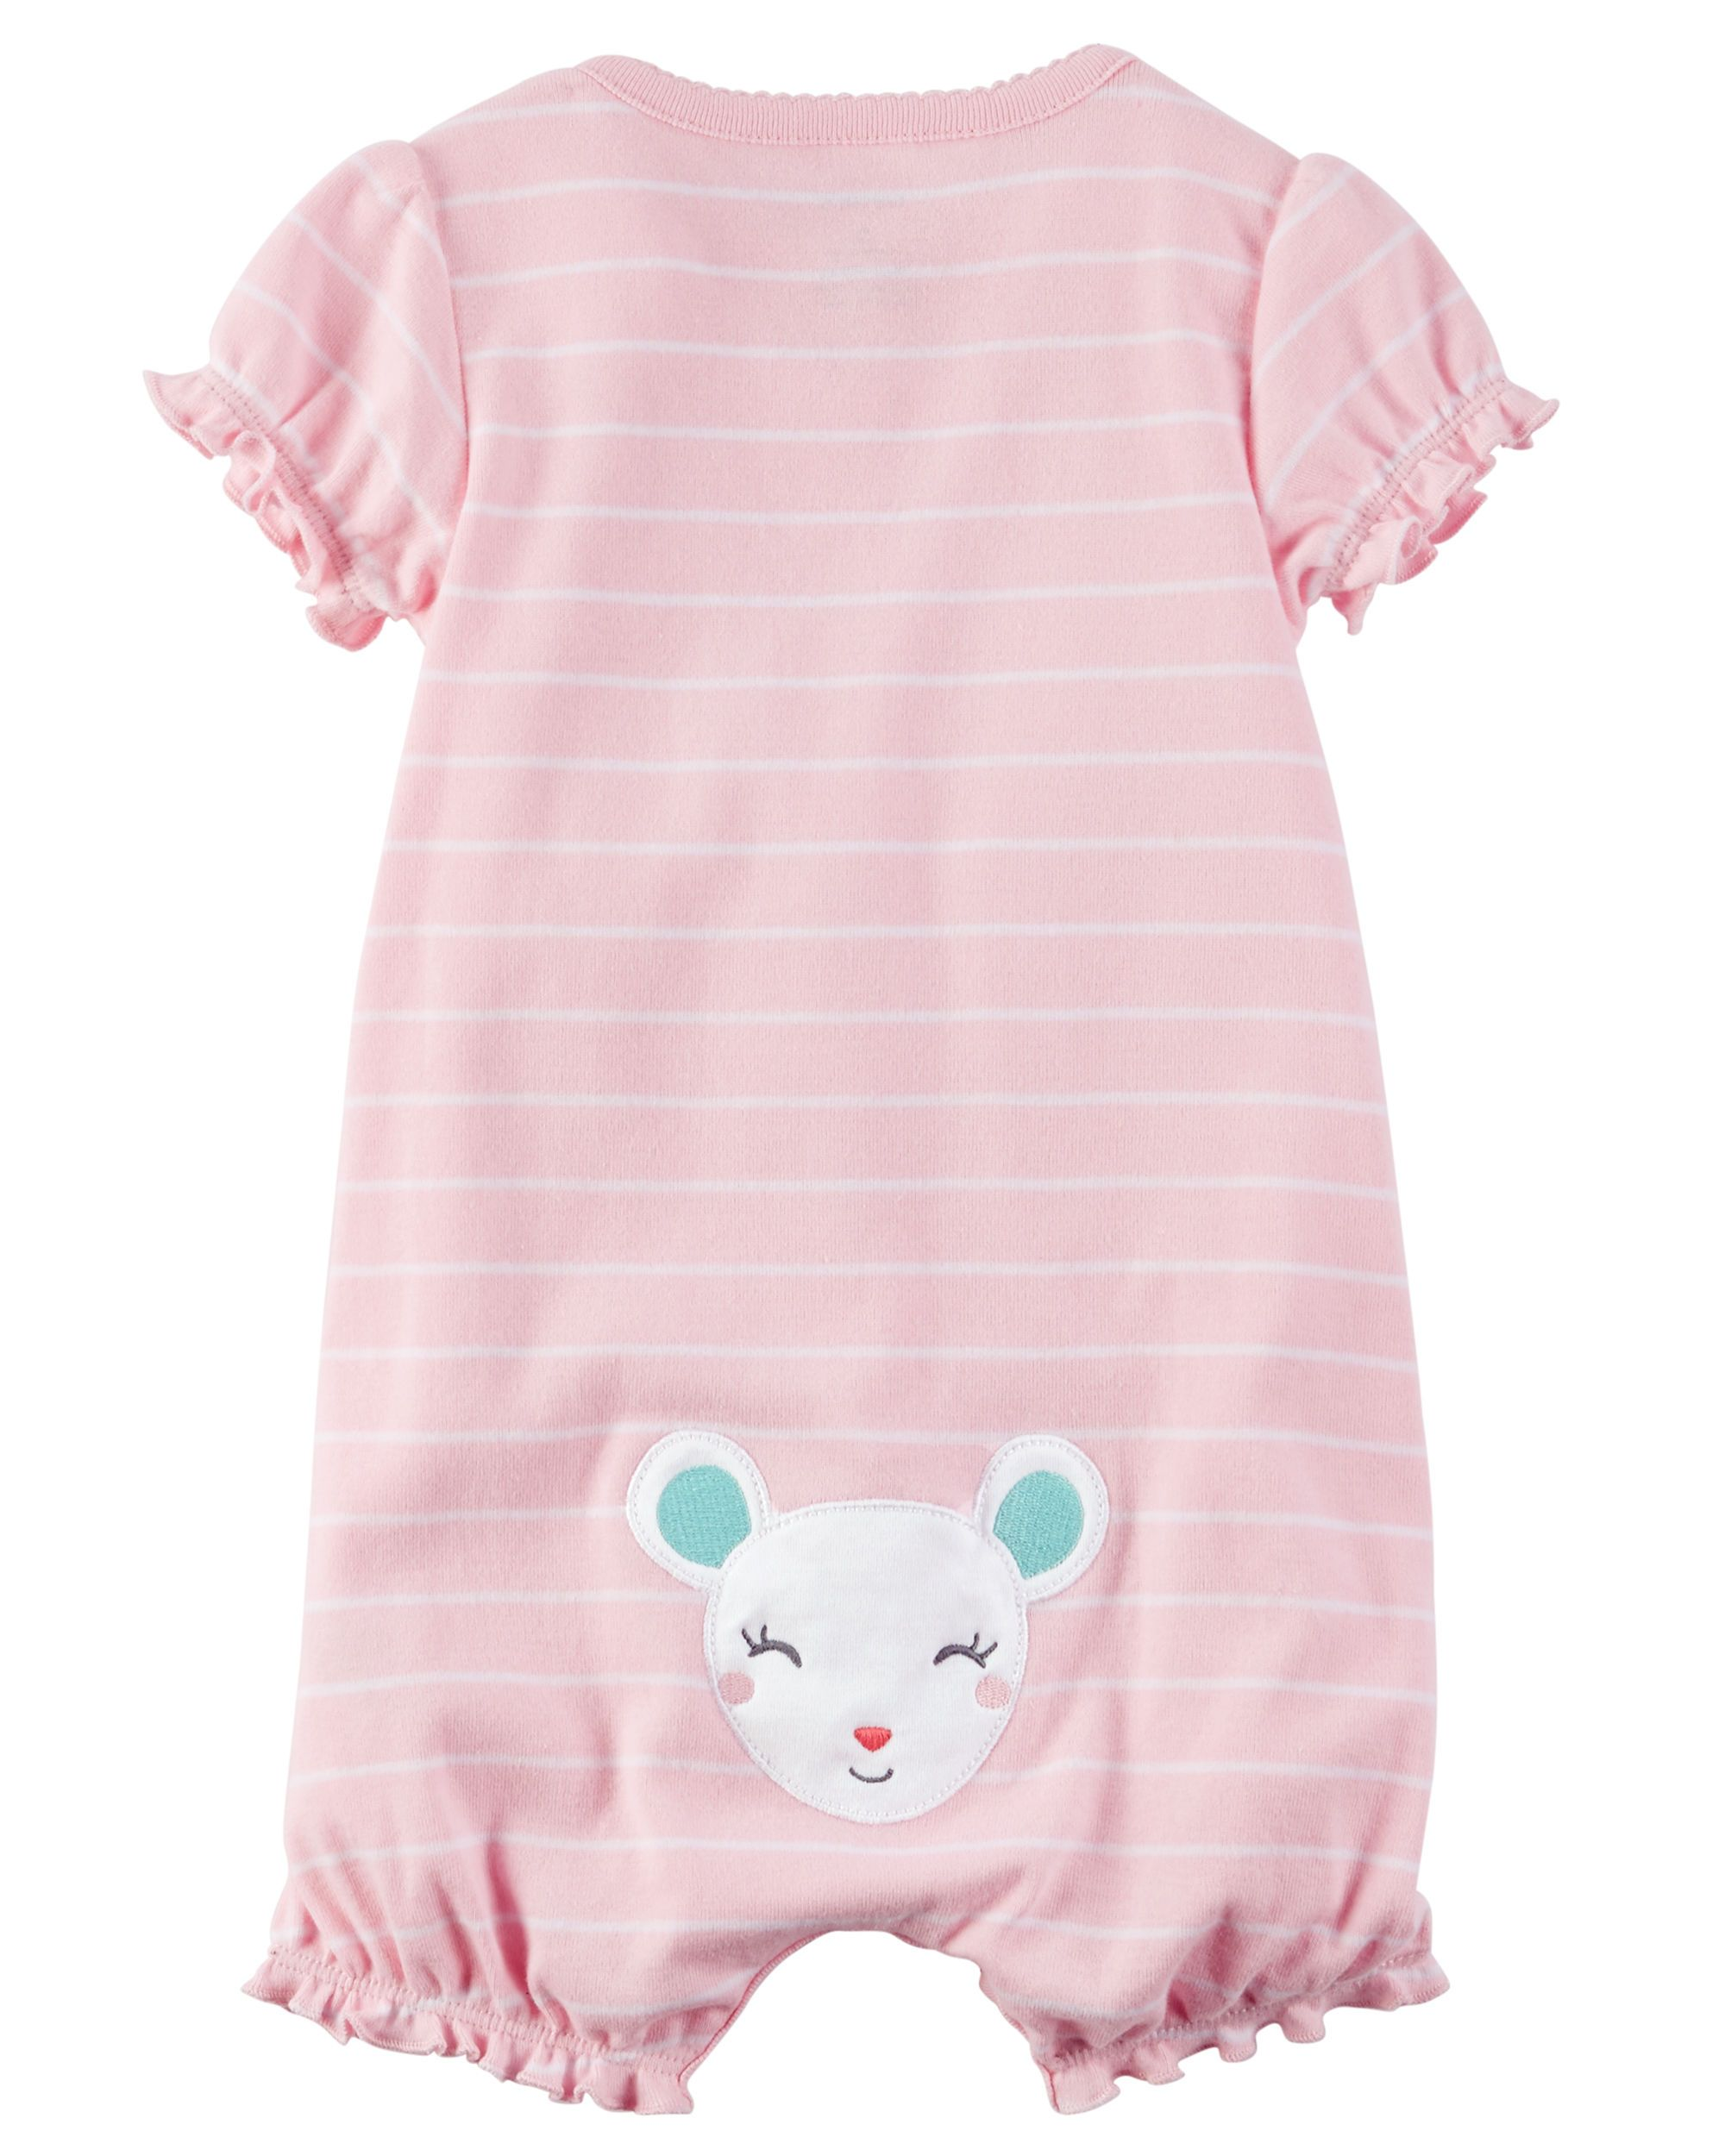 Baby Girl Snap Up Cotton Romper from Carters Shop clothing